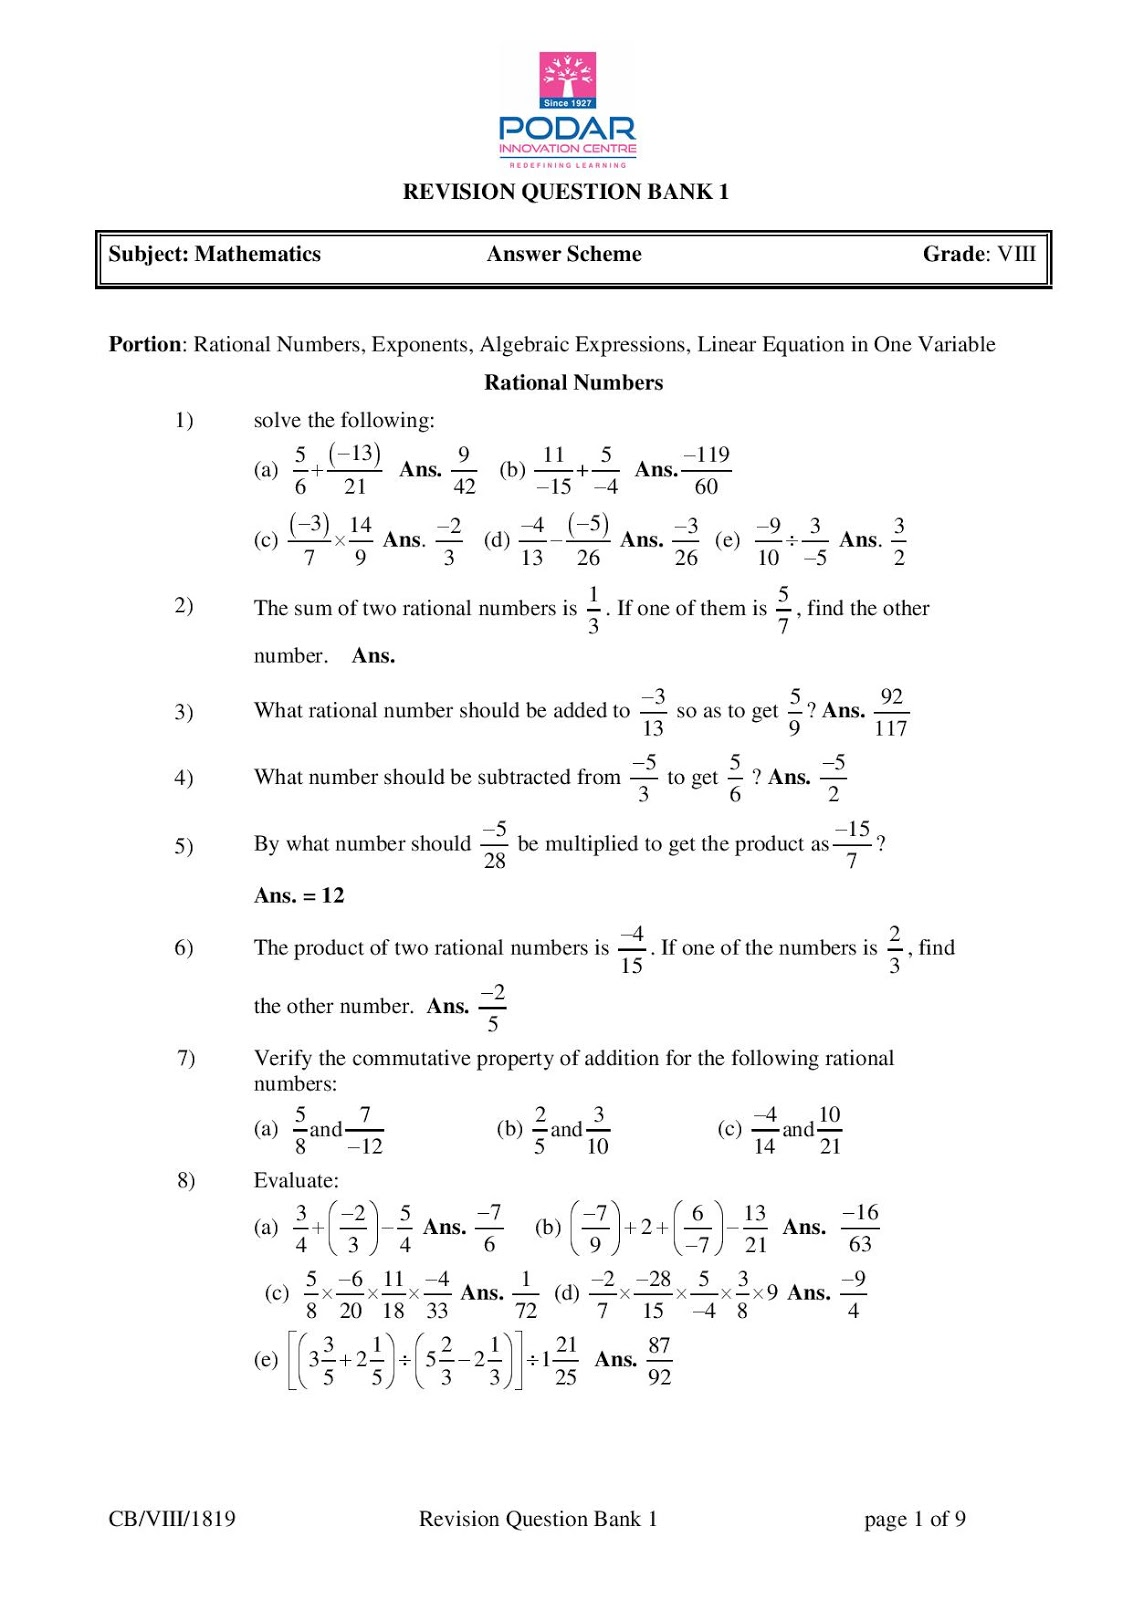 Math Revision Question Bank 1 Answer Scheme